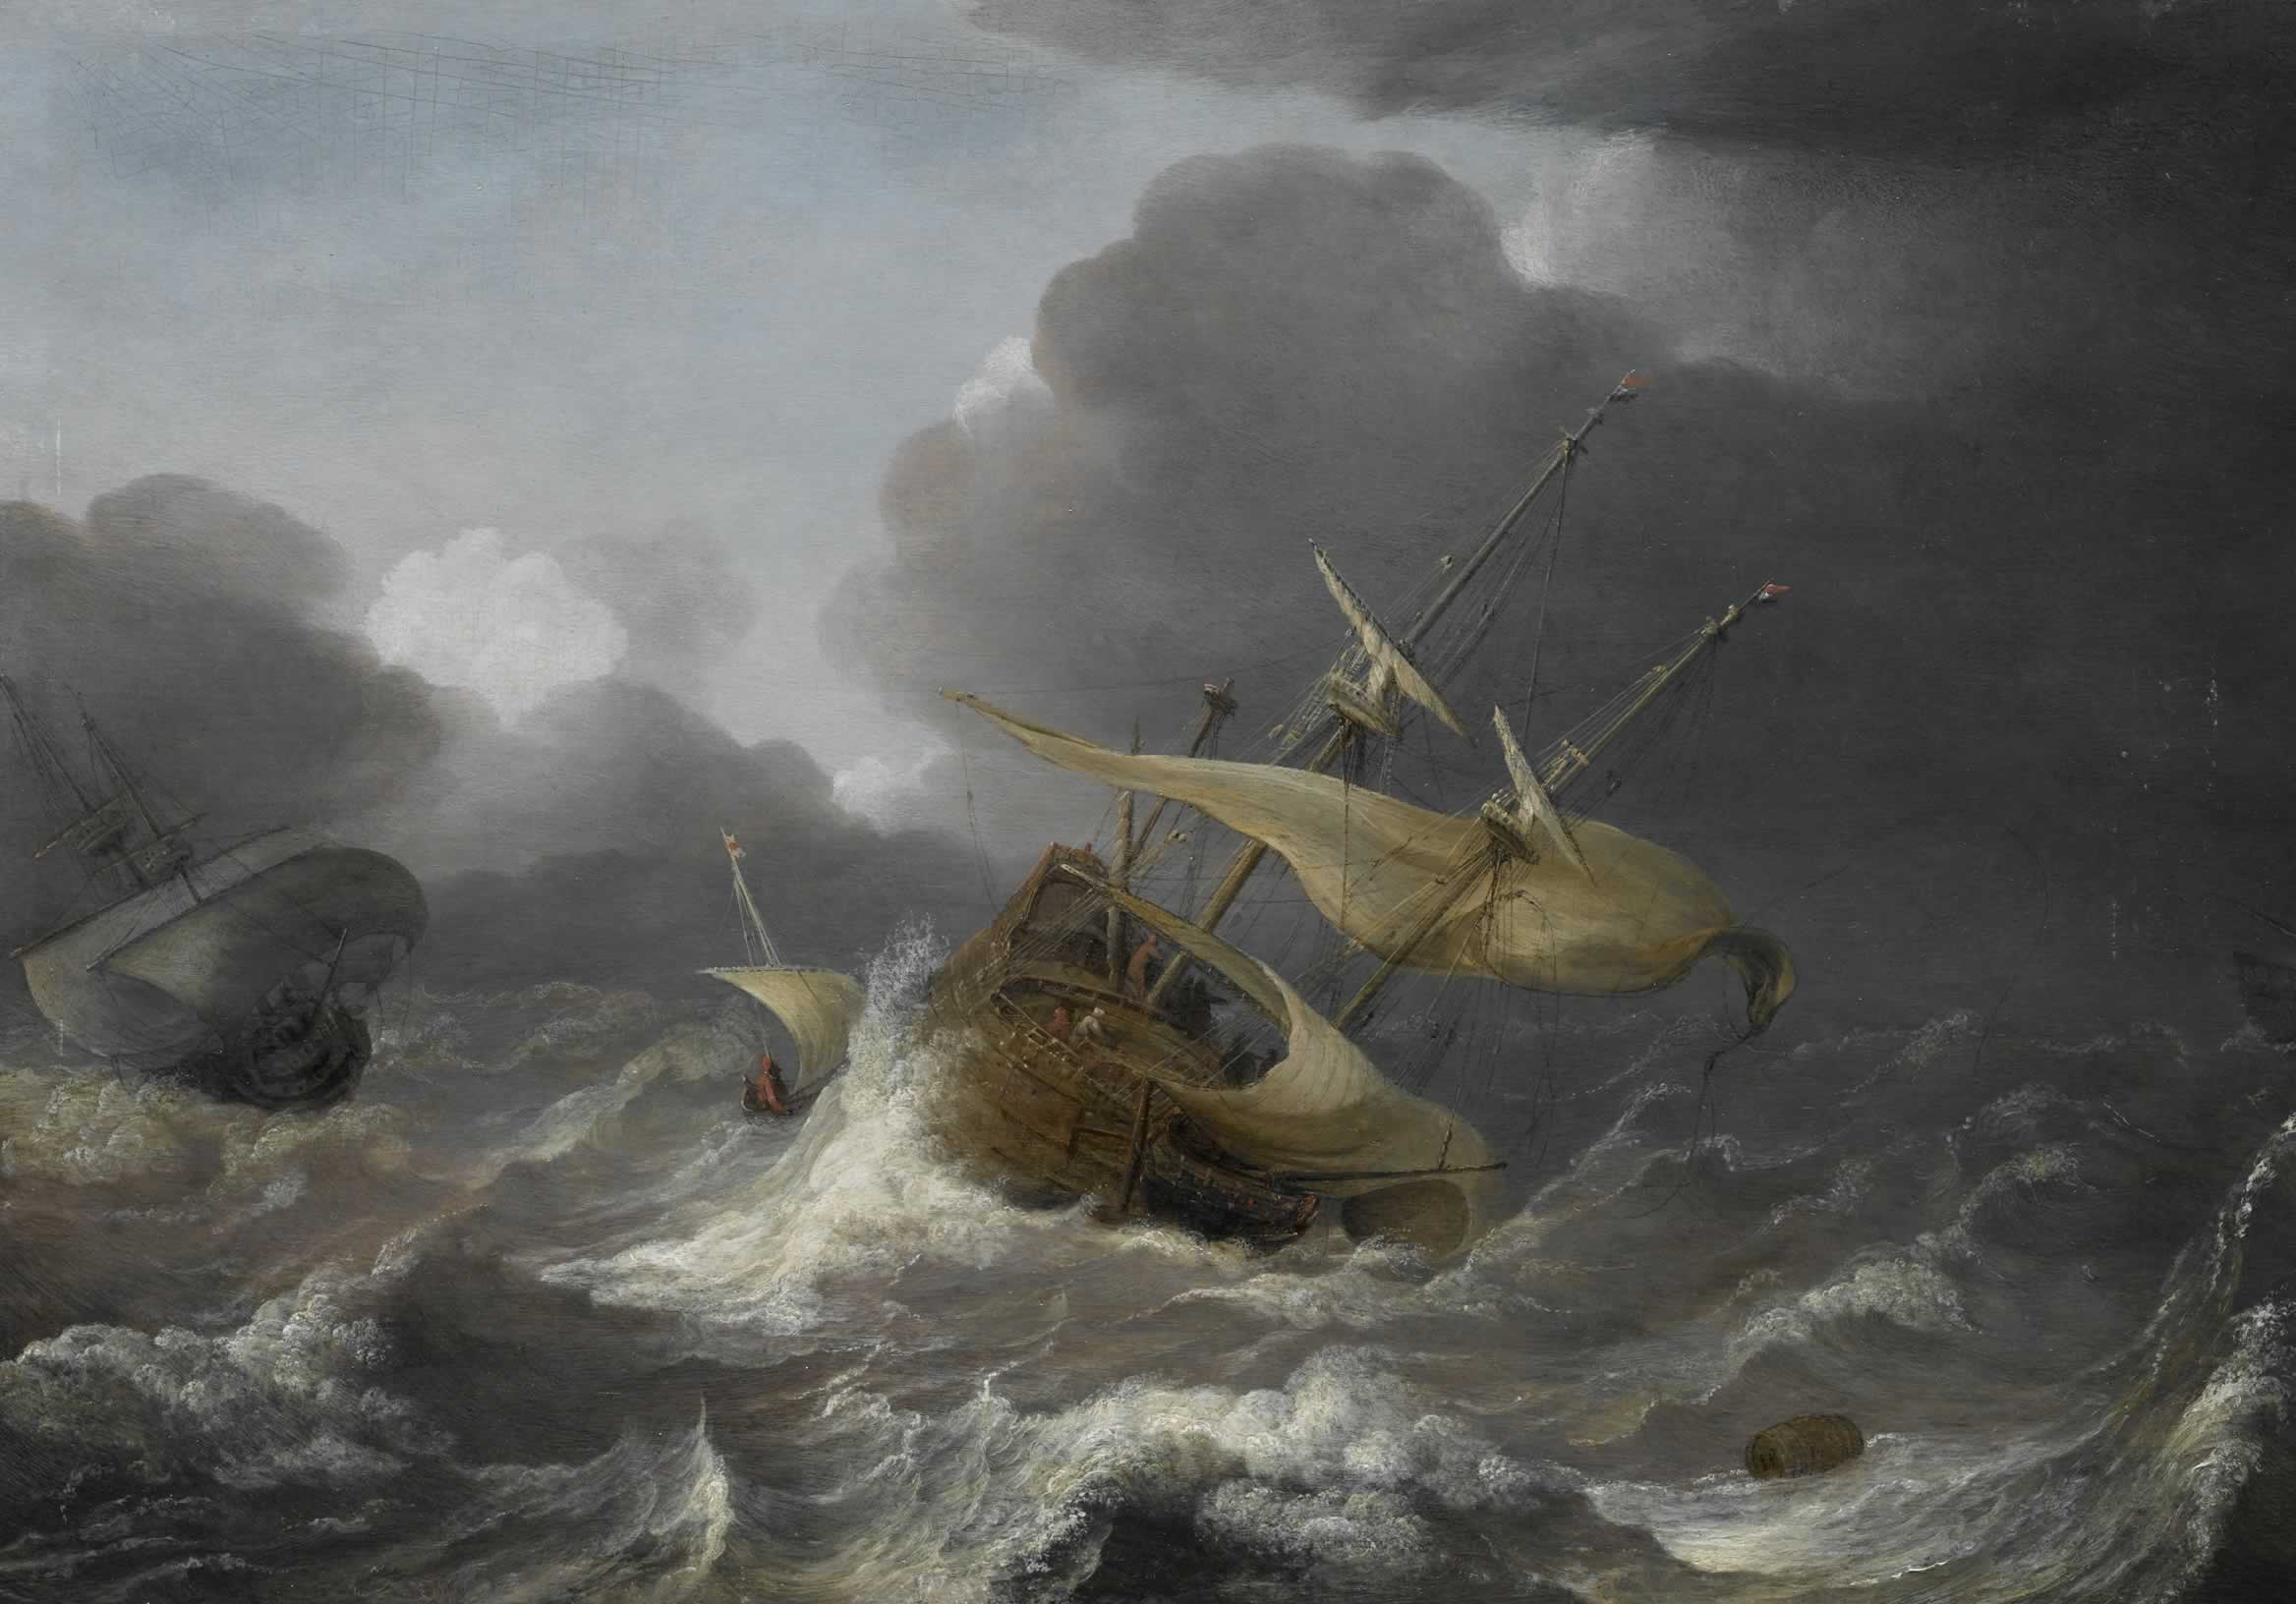 Shipwreck Paintings Artists